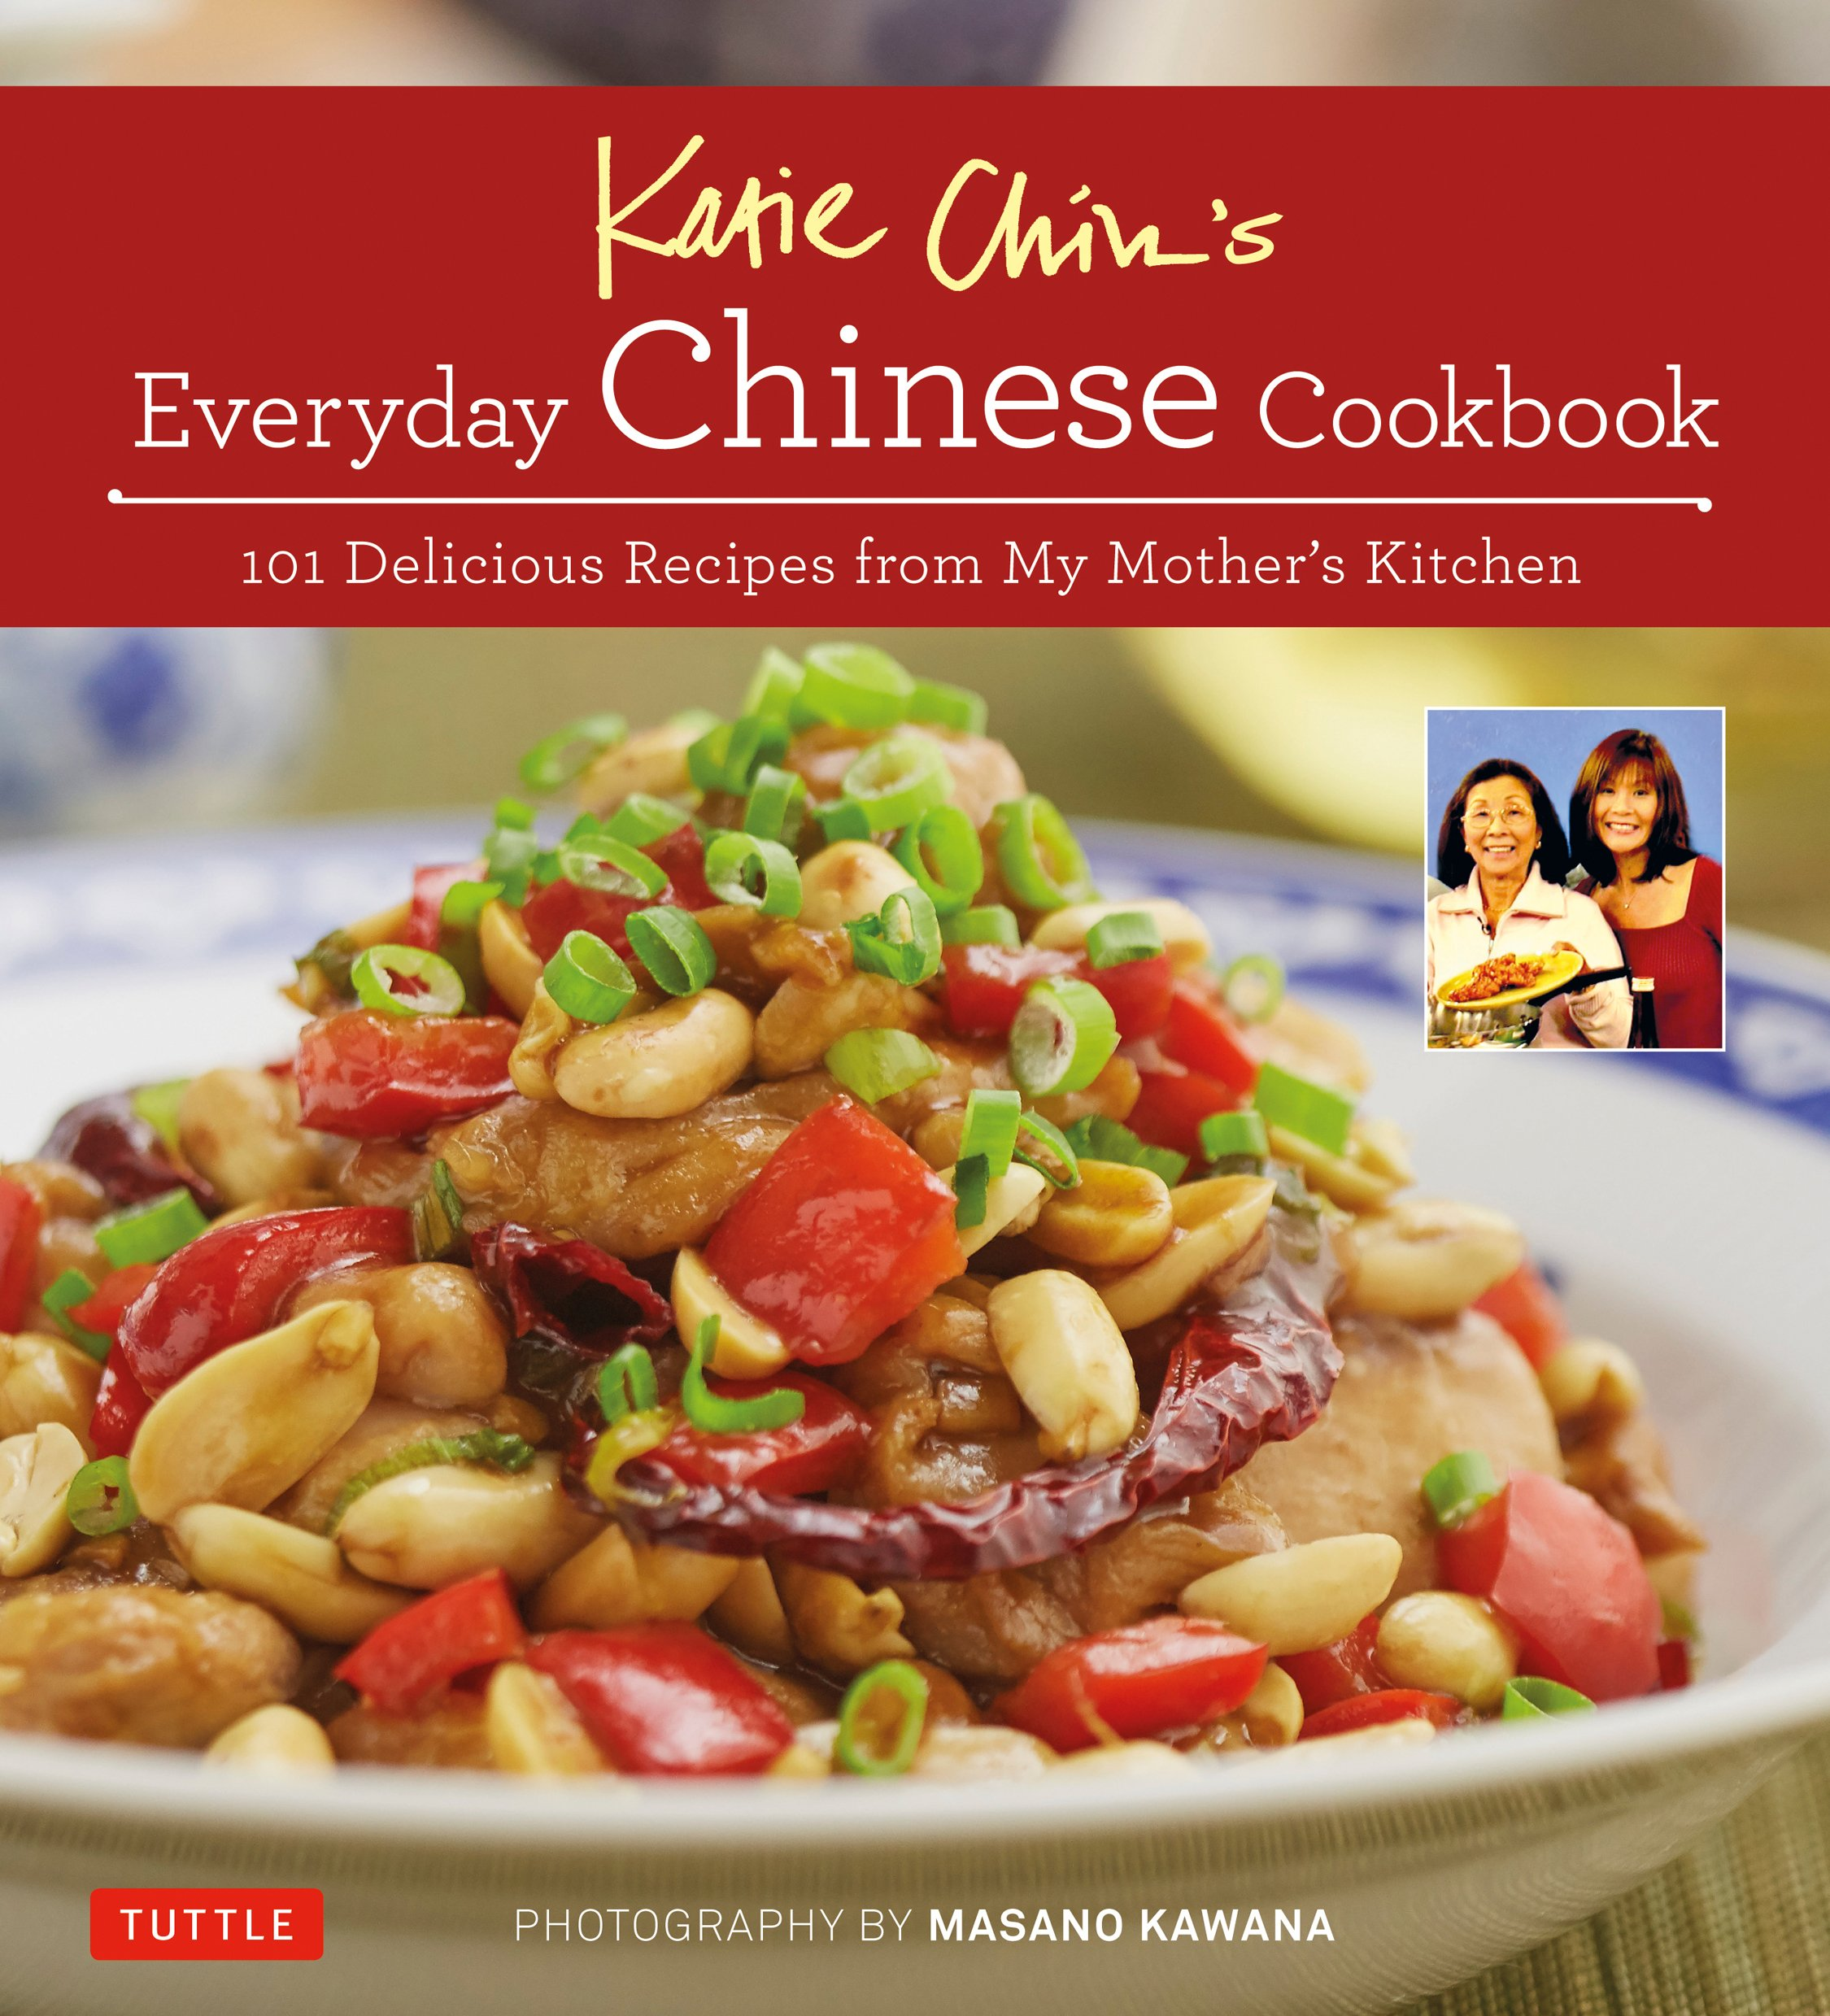 Katie Chin's Everyday Chinese Cookbook Review